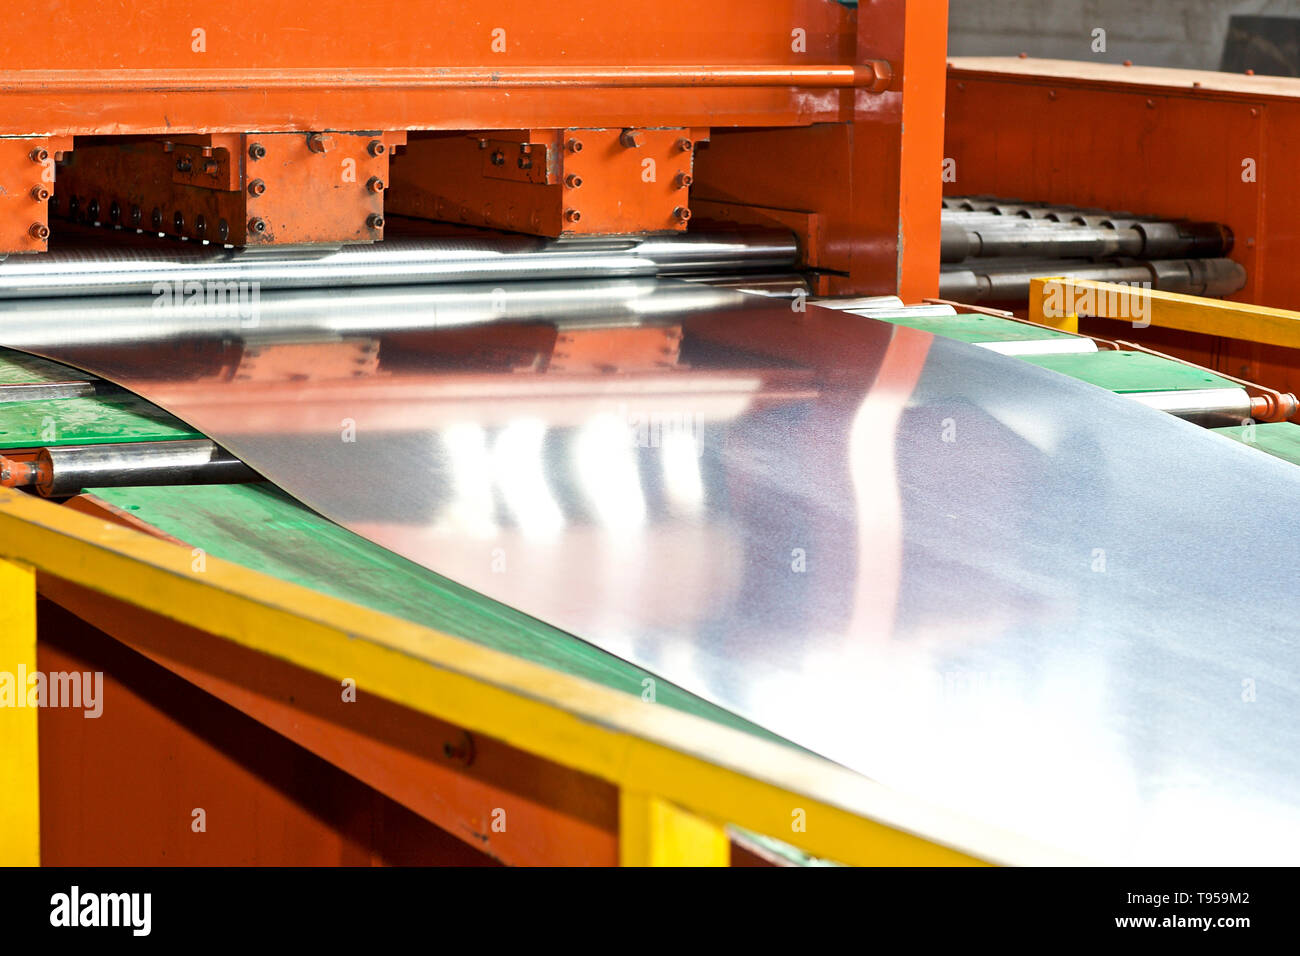 Galvanized sheet in the machine for further processing, Russia - Stock Image